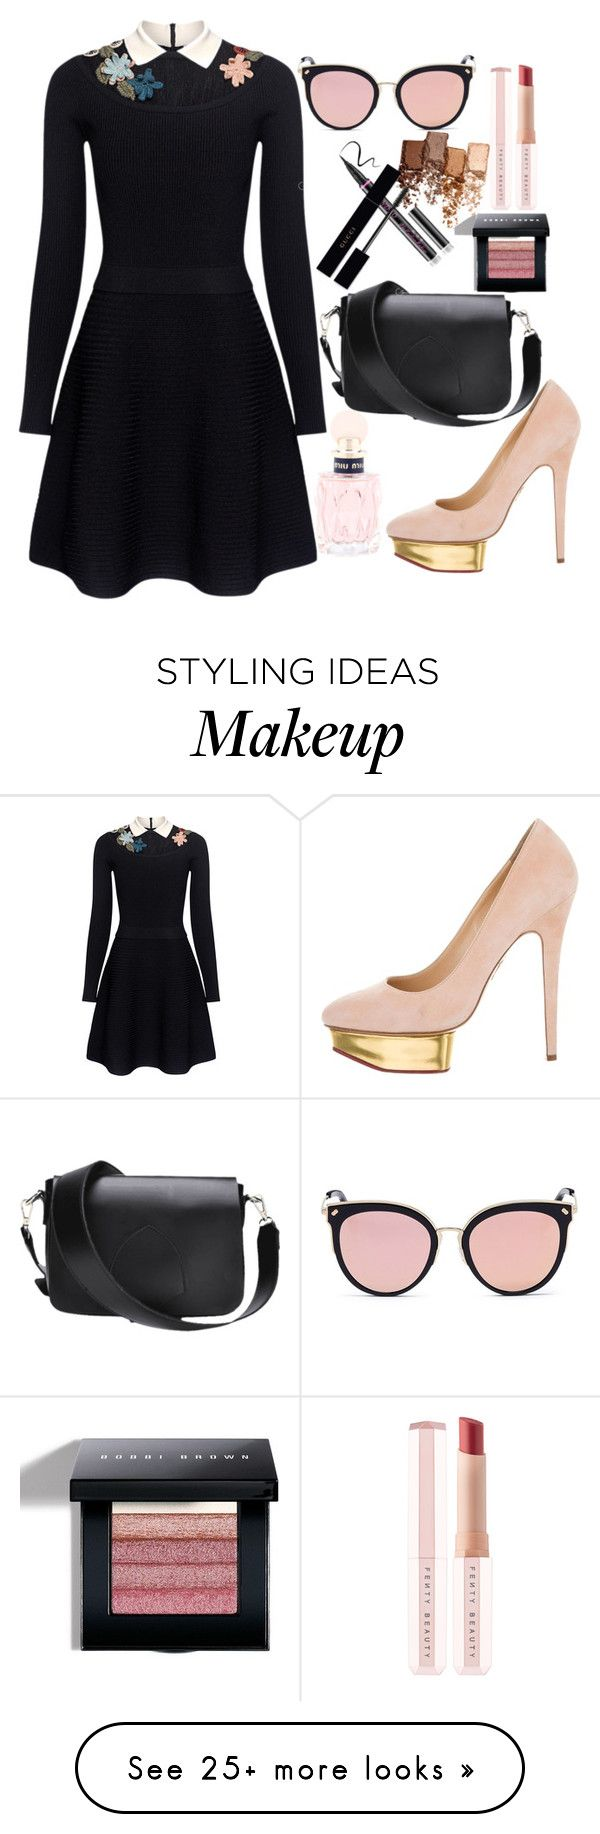 """""""power look"""" by itsbree013 on Polyvore featuring RED Valentino, Charlotte Olympia, Stephane + Christian, Miu Miu, Puma, Maybelline, Gucci and Bobbi Brown Cosmetics"""